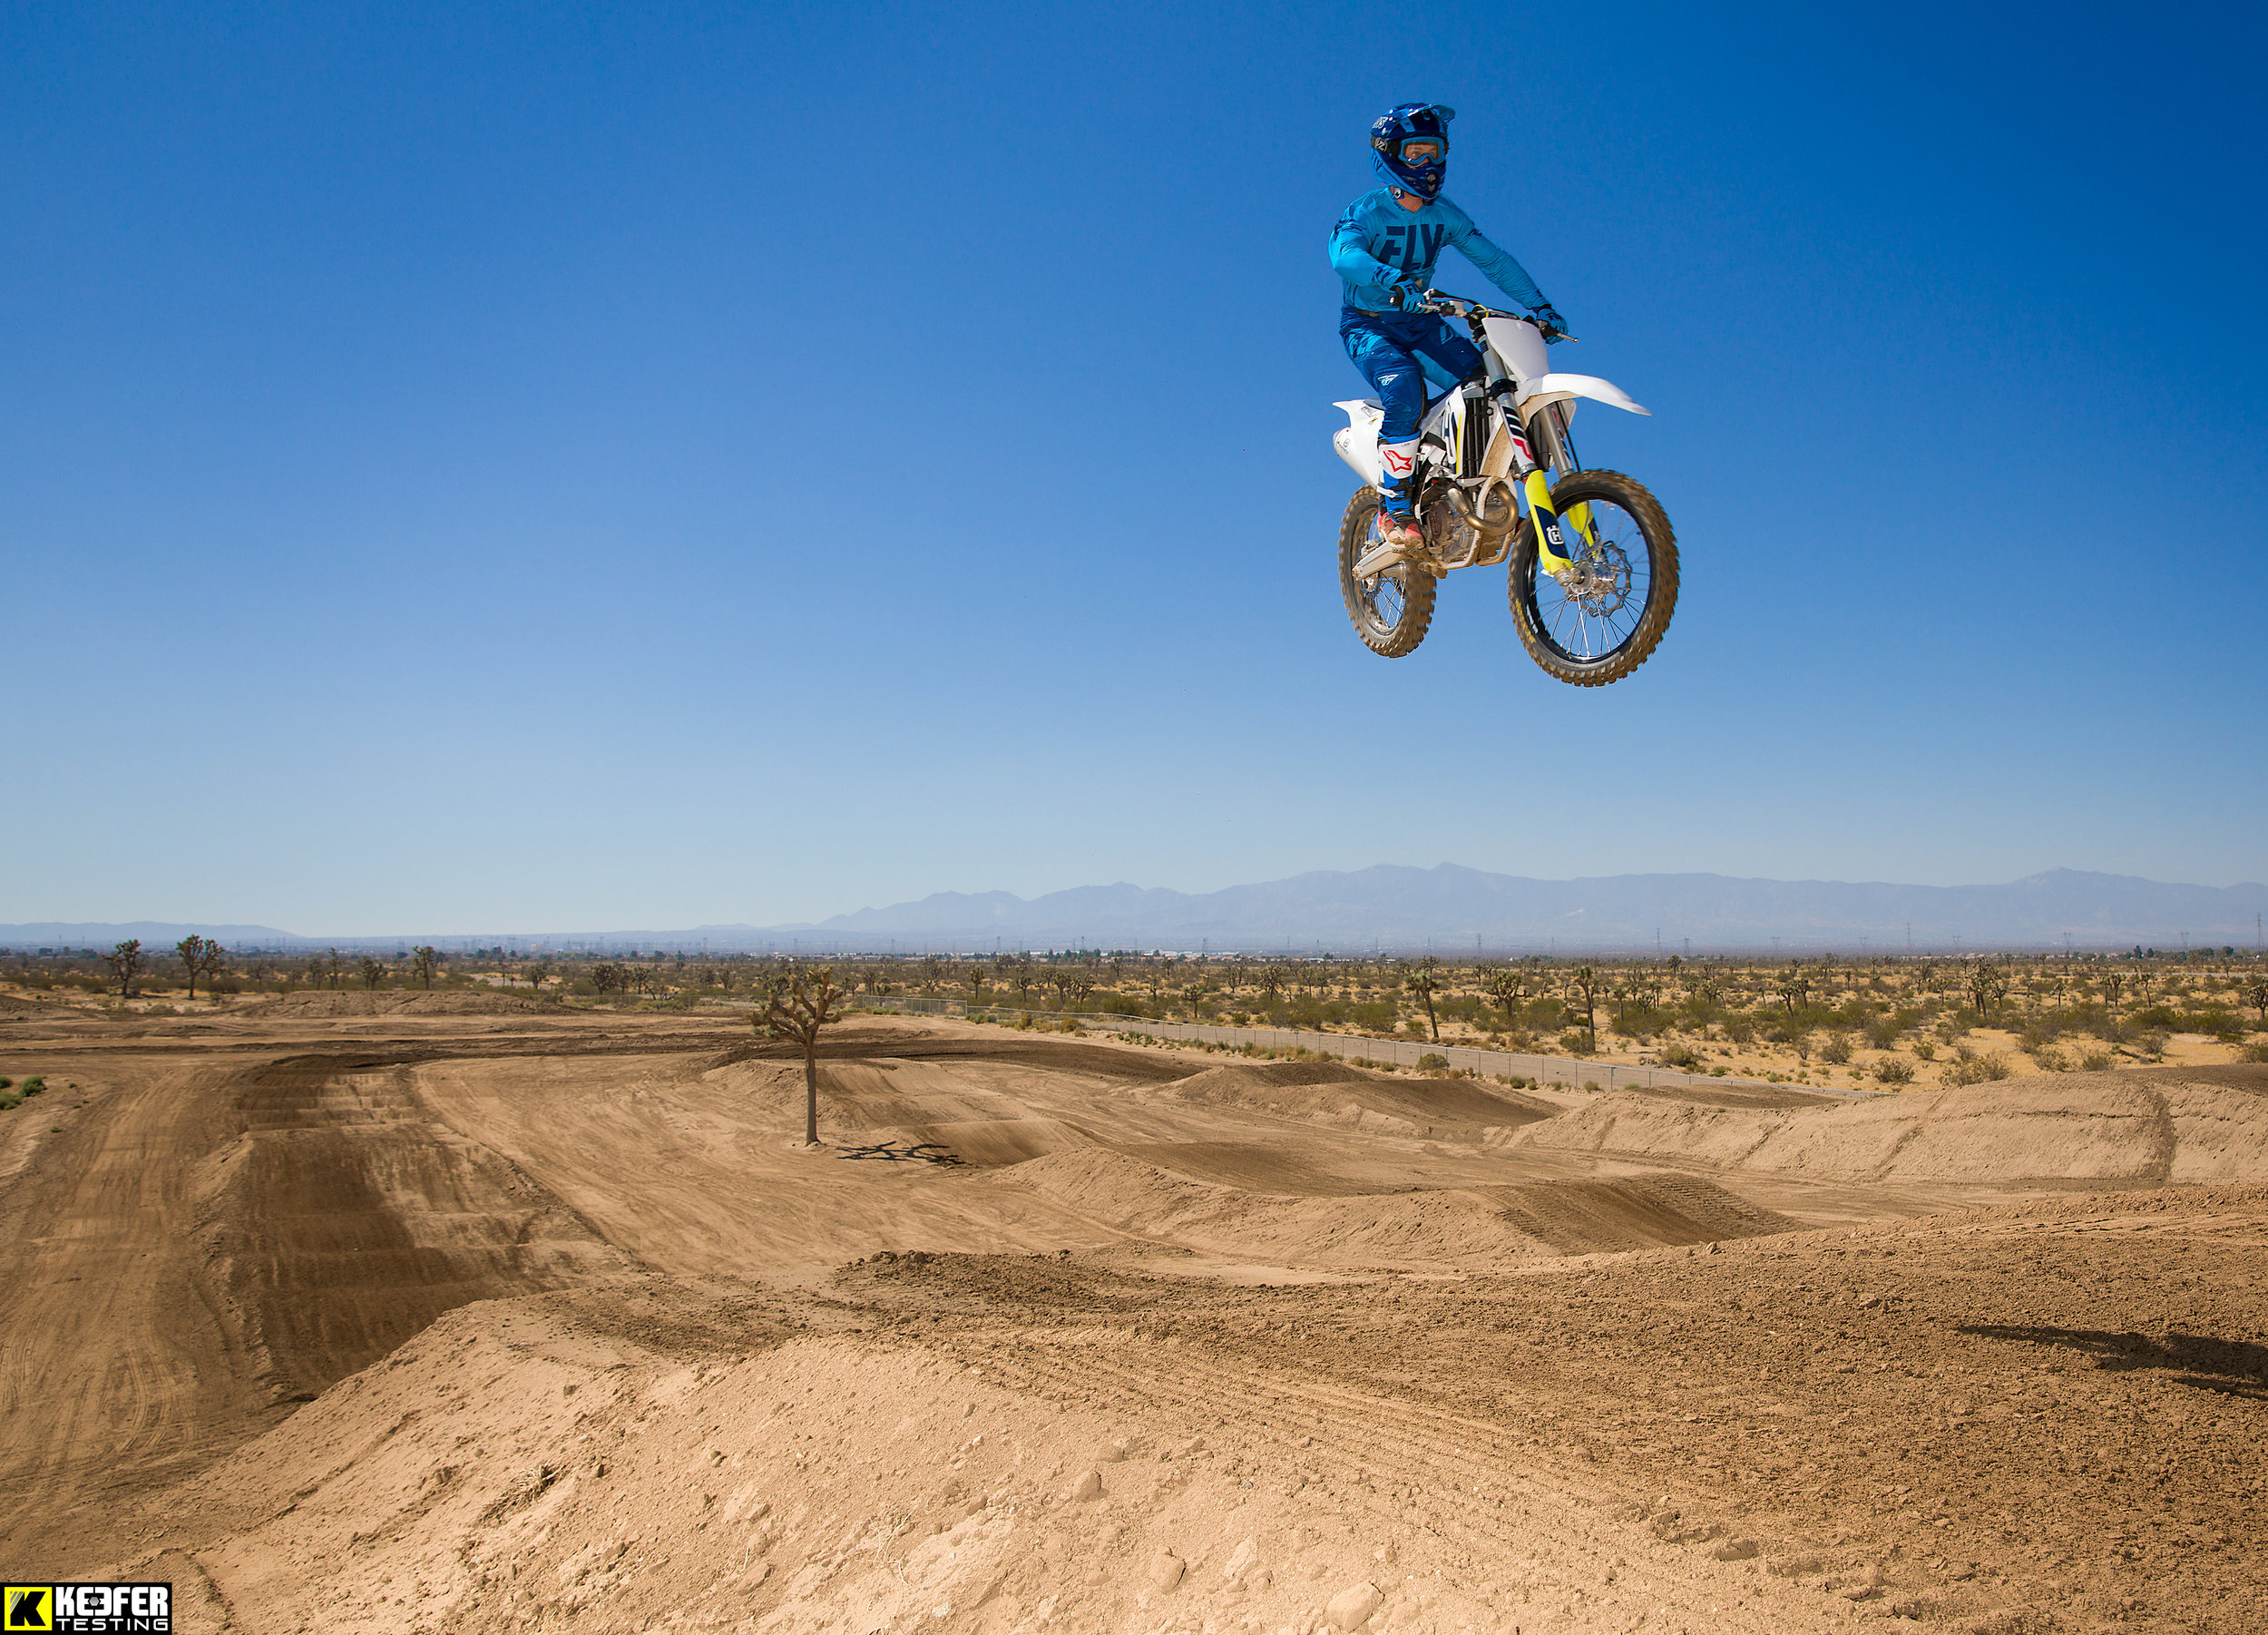 Broc Shoemaker flies the Husqvarna through the clear skies of the high desert.